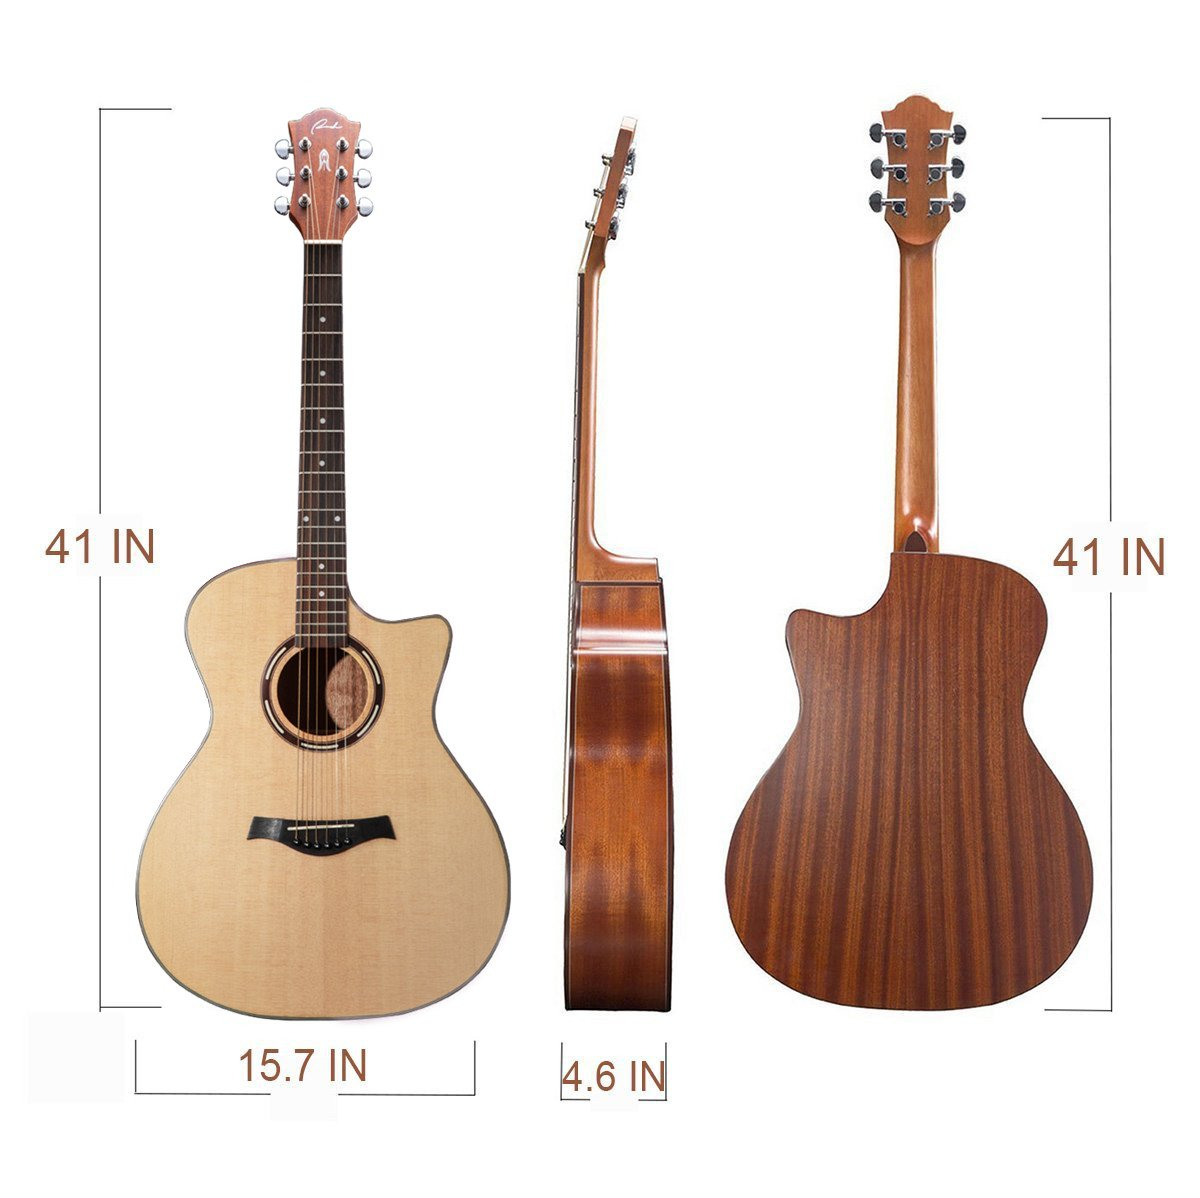 The Dimensions of the Guitar Ranch Full Size Grand Auditorium Acoustic Guitar